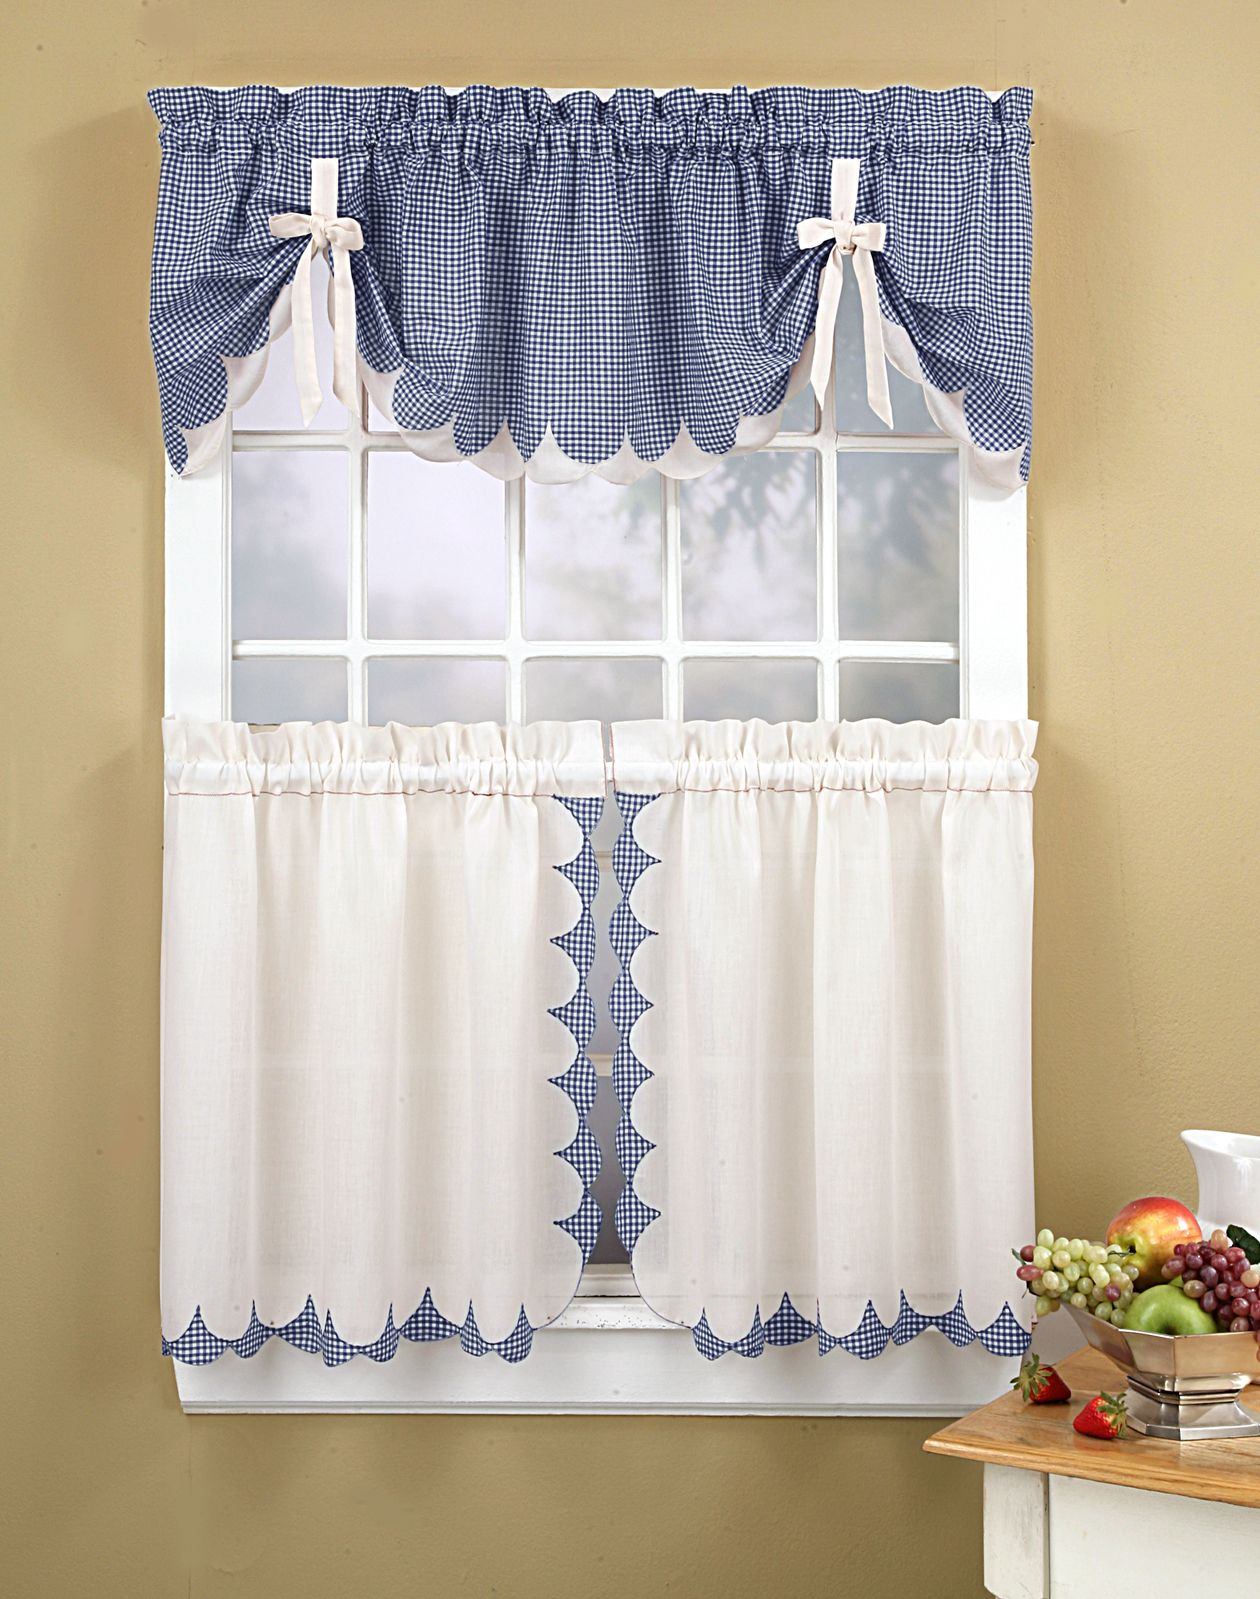 Kitchen curtains tabitha 3 piece kitchen curtain tier - Rideaux cuisine moderne ikea ...